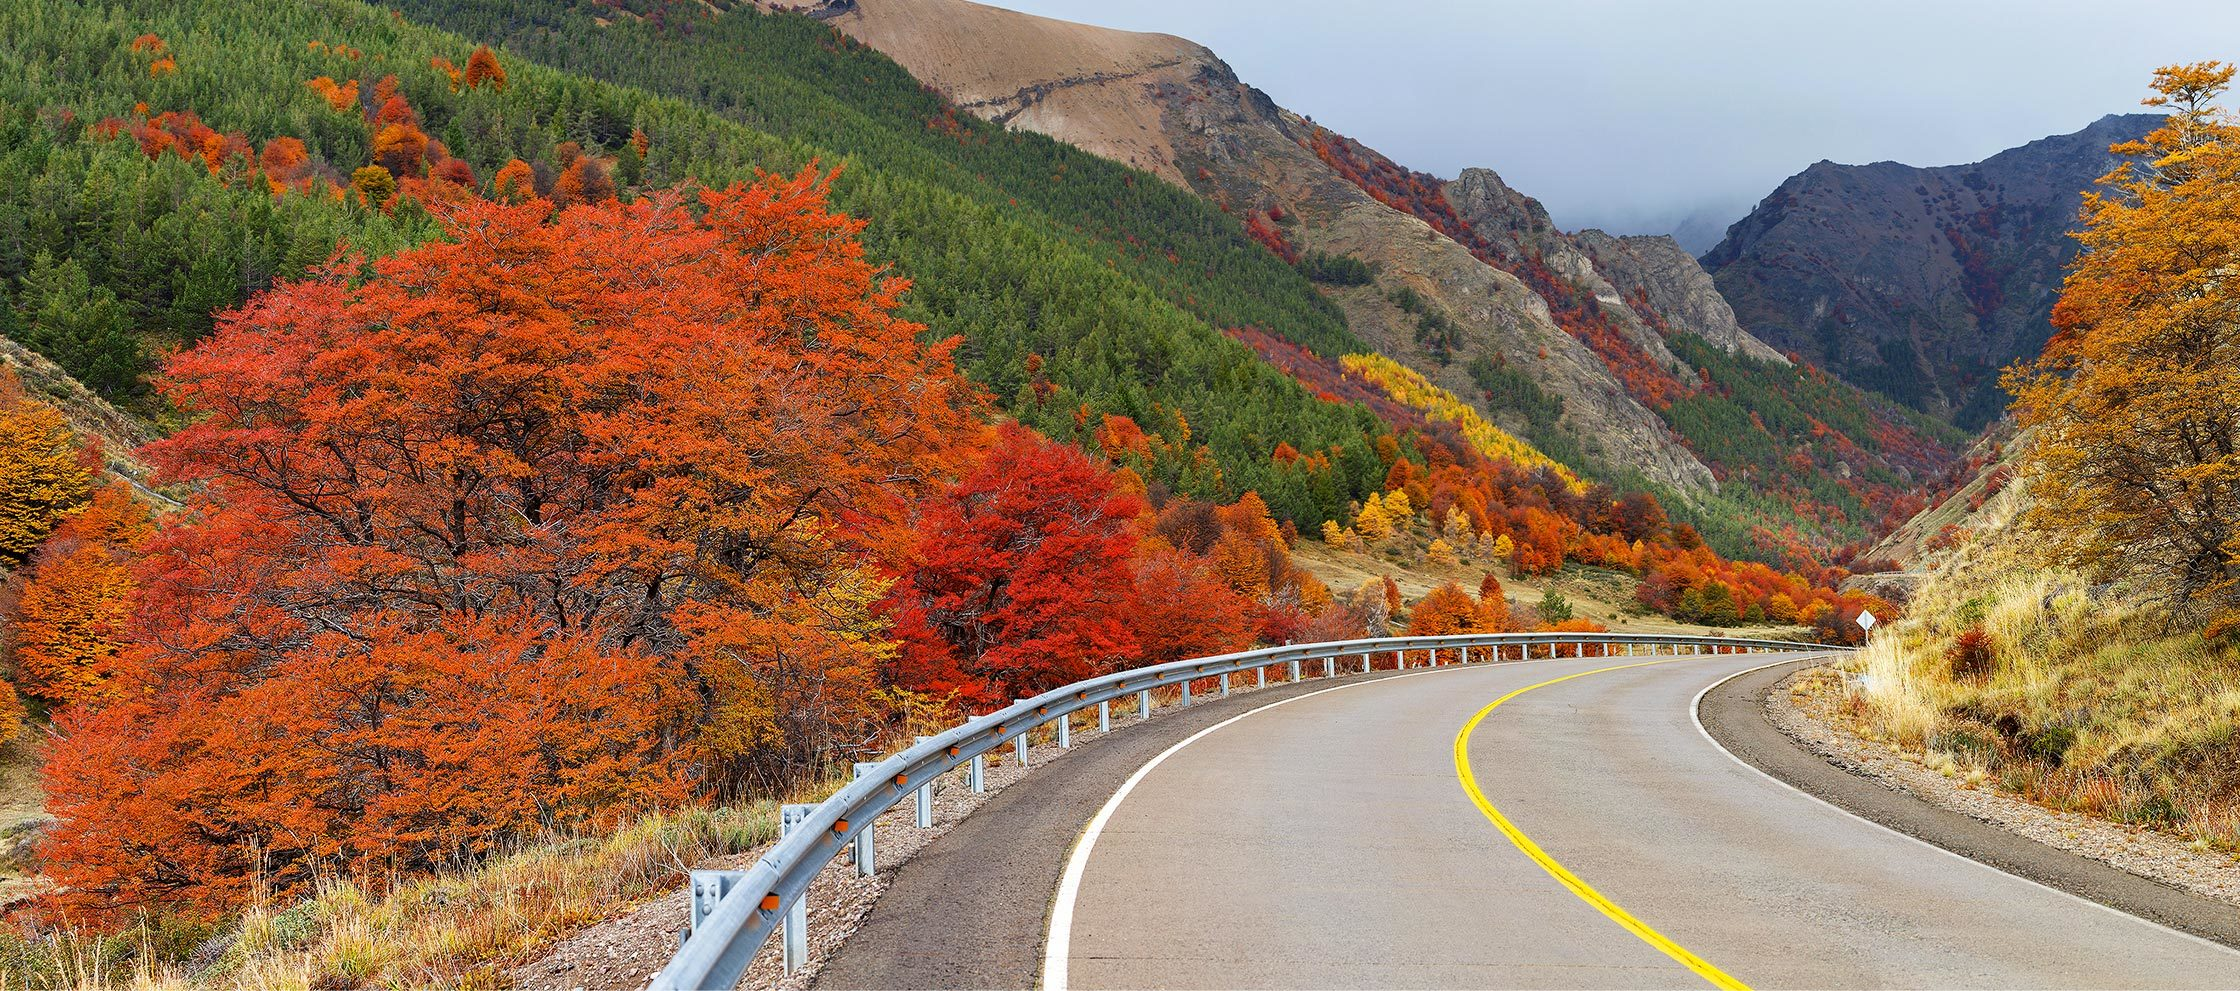 Populaire Spectacular drive through Chile - iFly KLM Magazine IL53